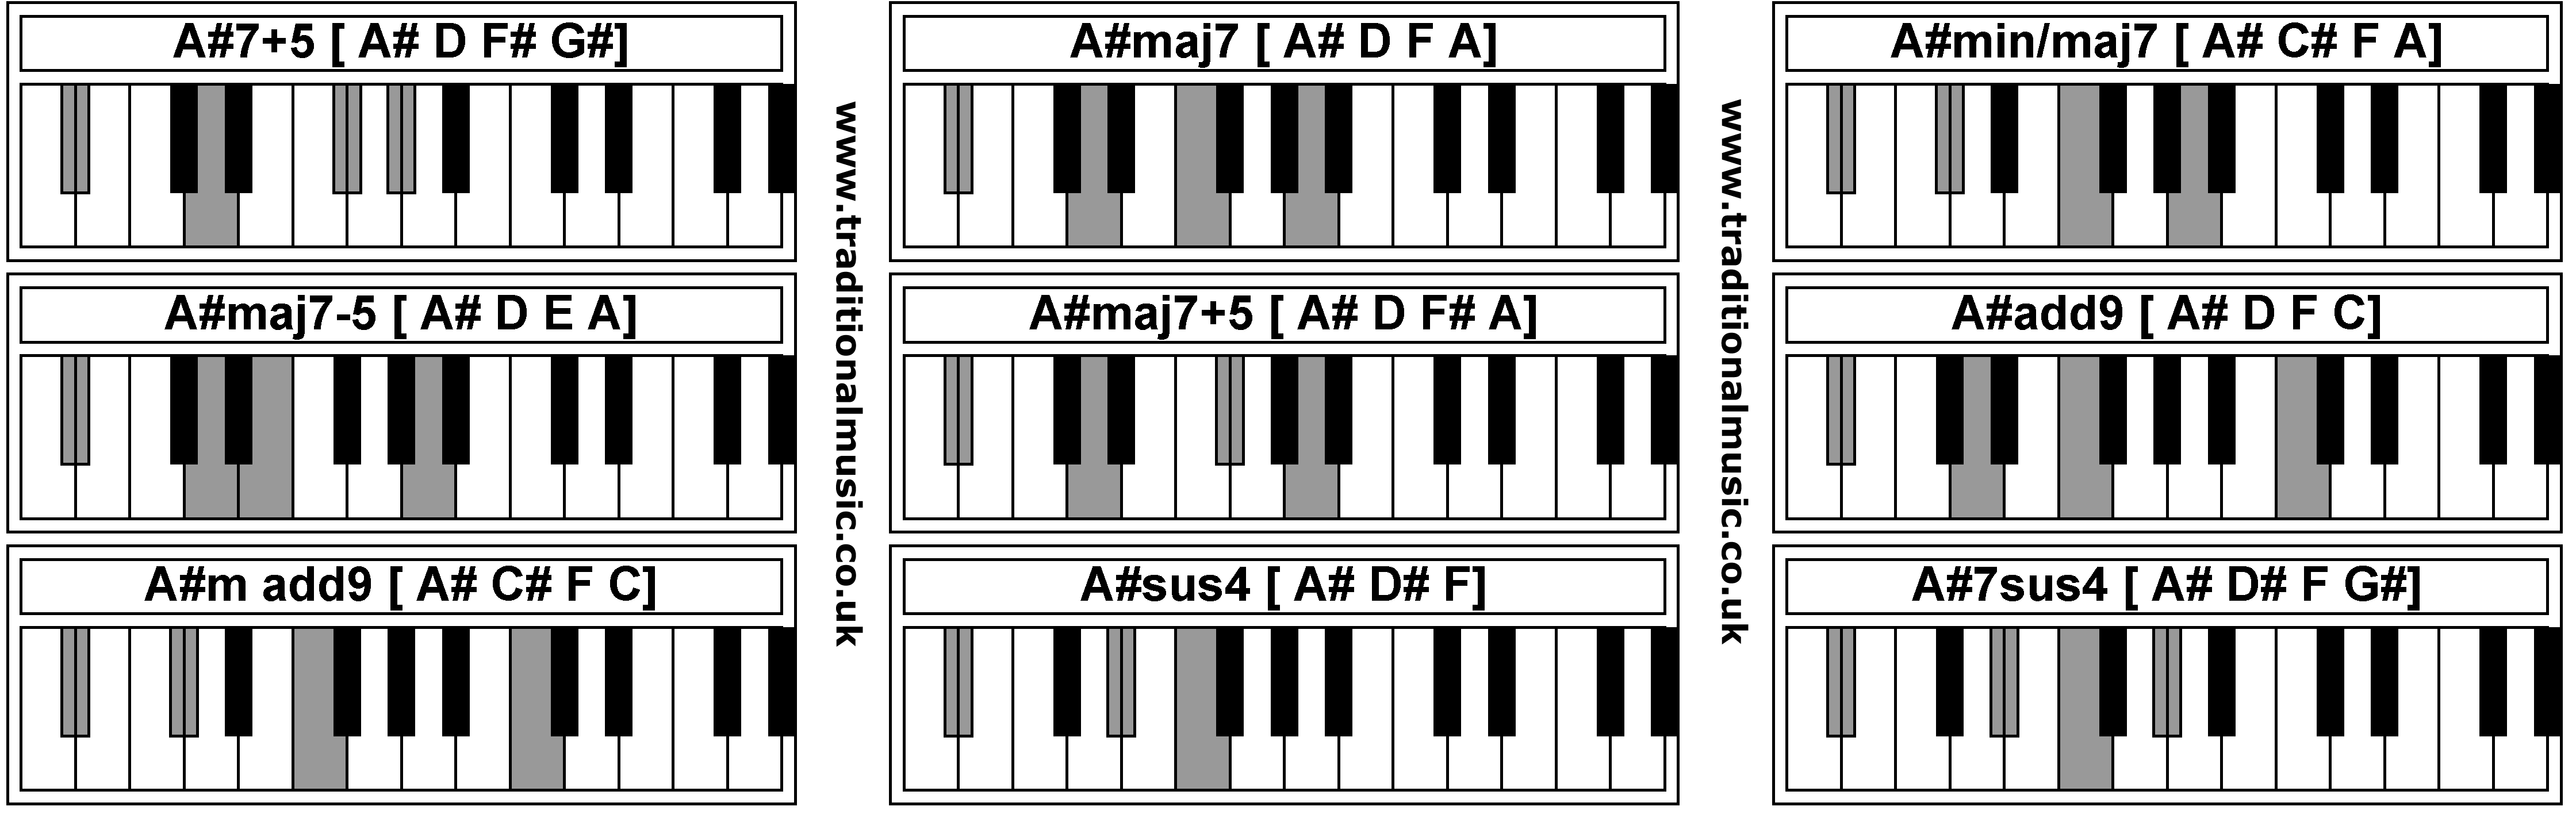 Chords a75 amaj7 aminmaj7 amaj7 5 amaj7 chords a75 amaj7 aminmaj7 amaj7 5 amaj75 aadd9 am add9 asus4 a7sus4 hexwebz Image collections